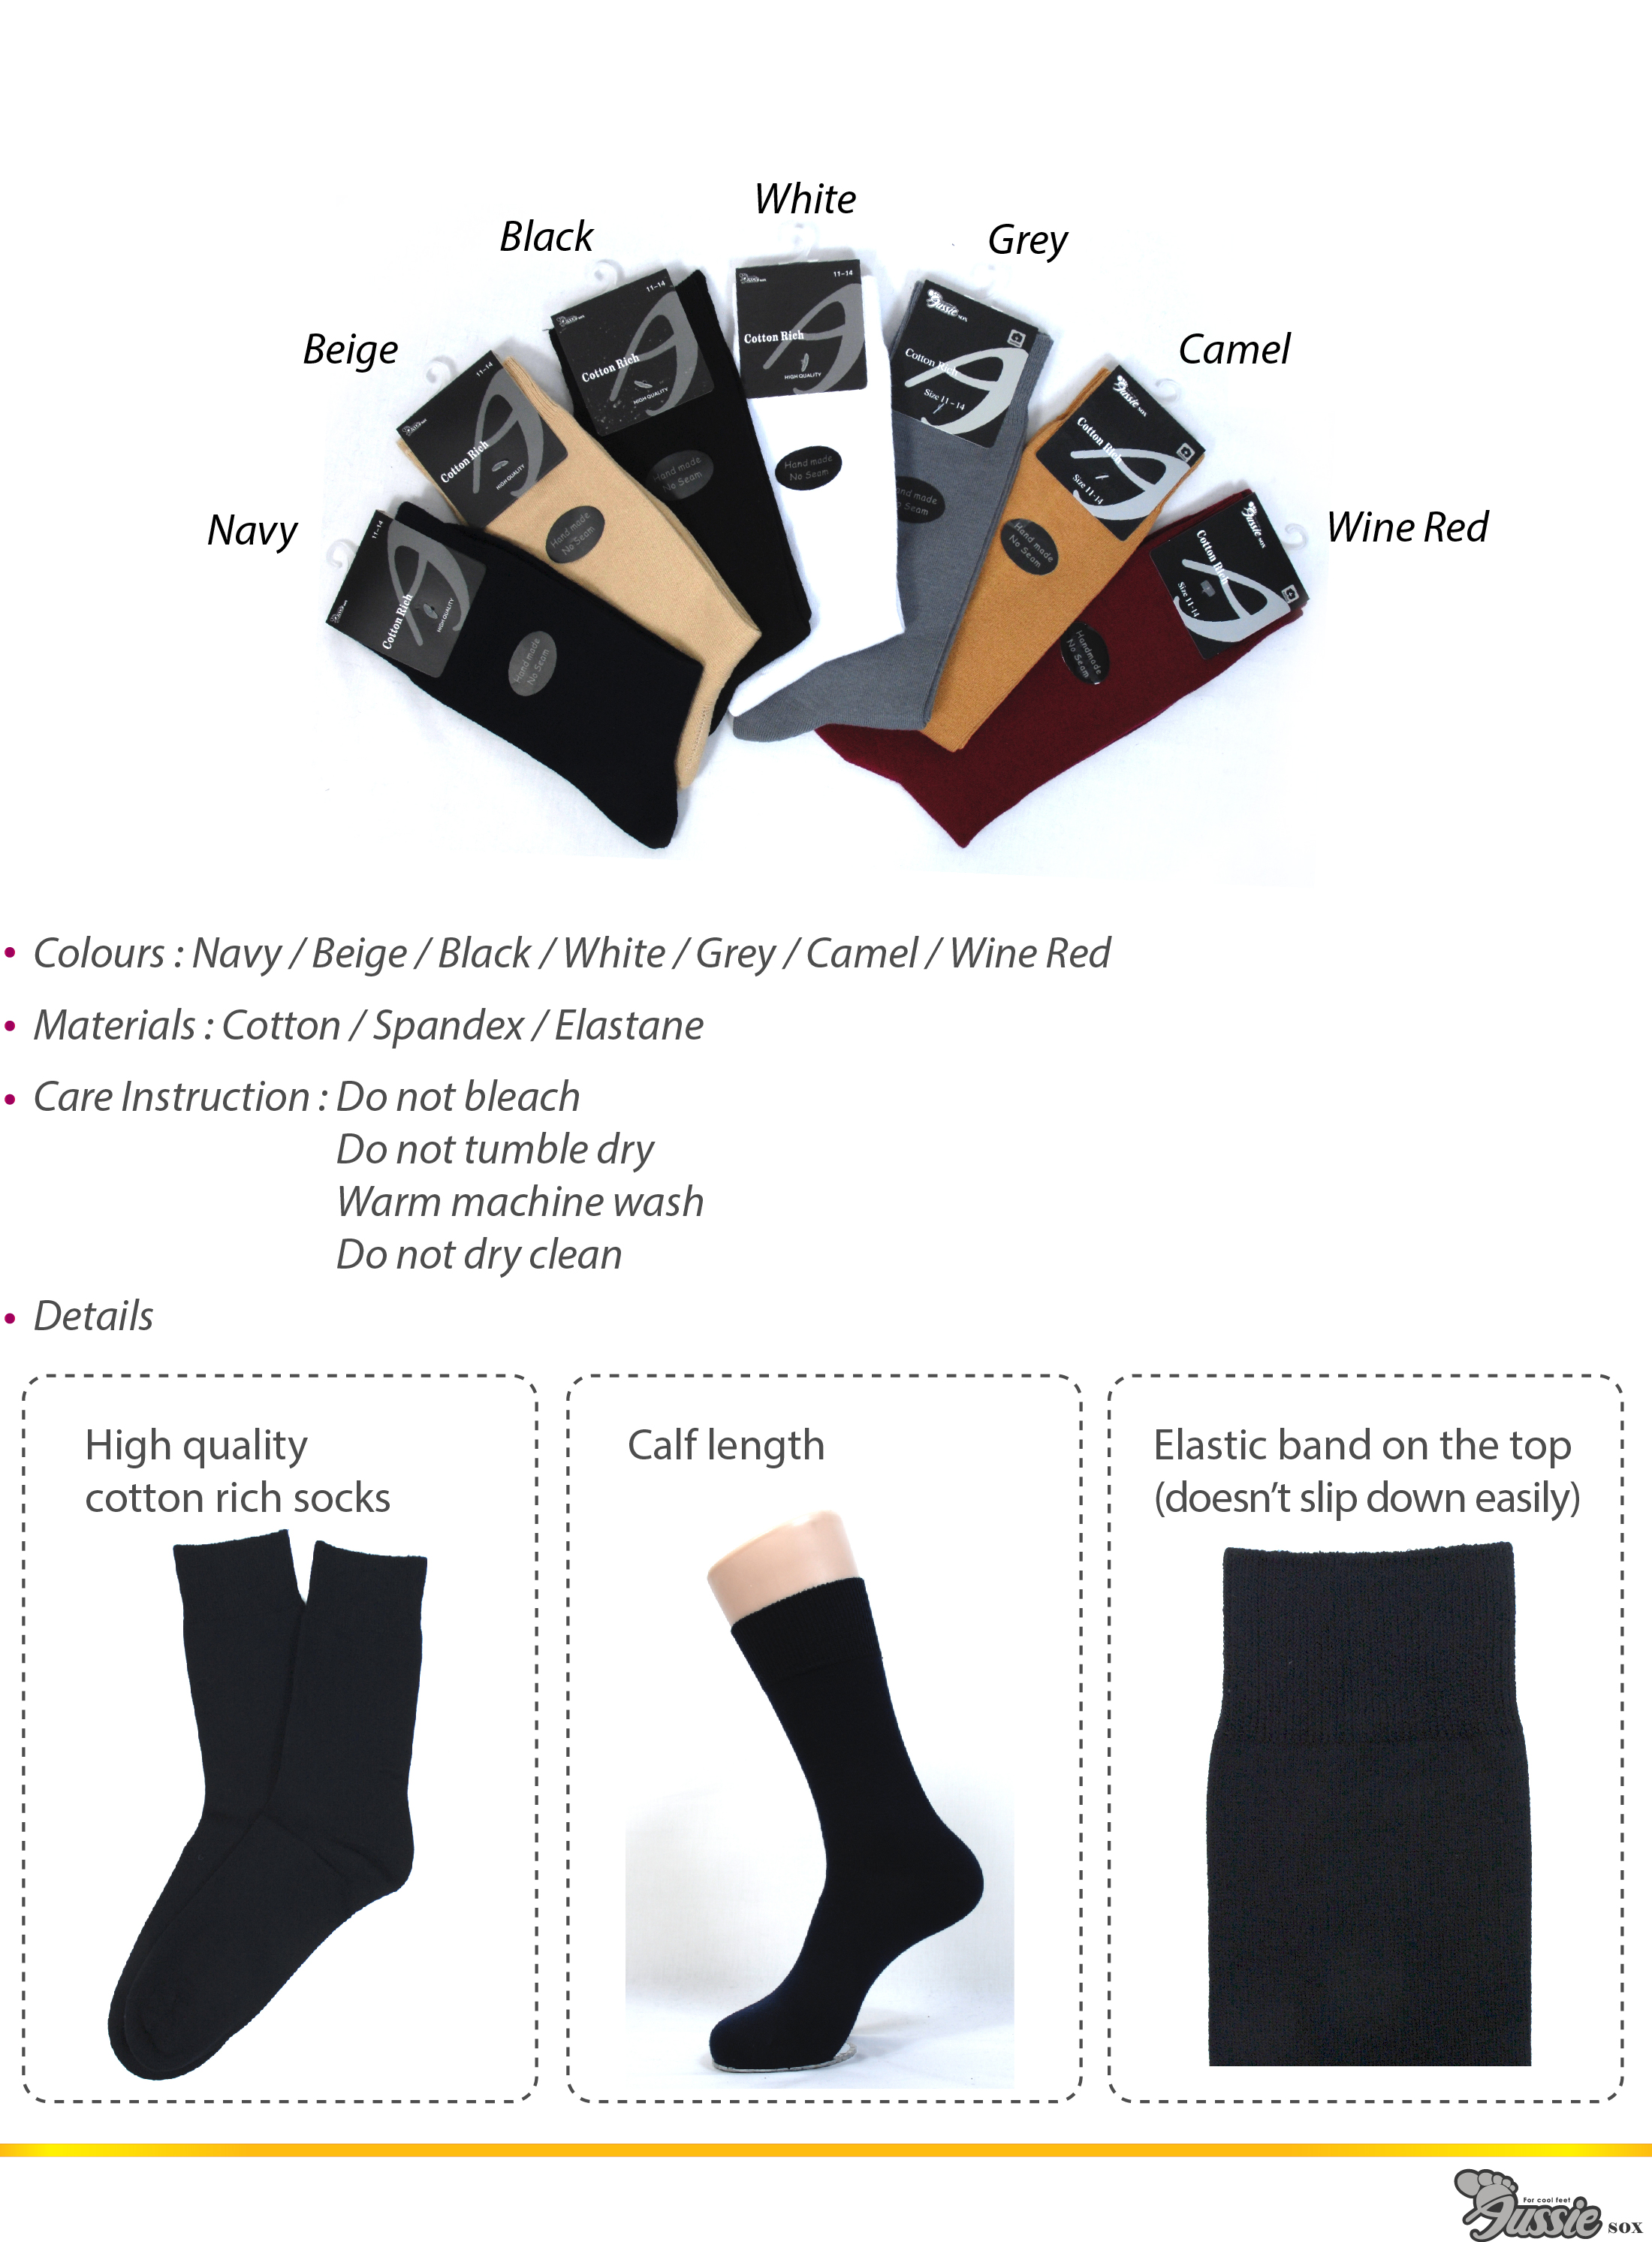 High quality cotton rich socks in a wide range of colours.